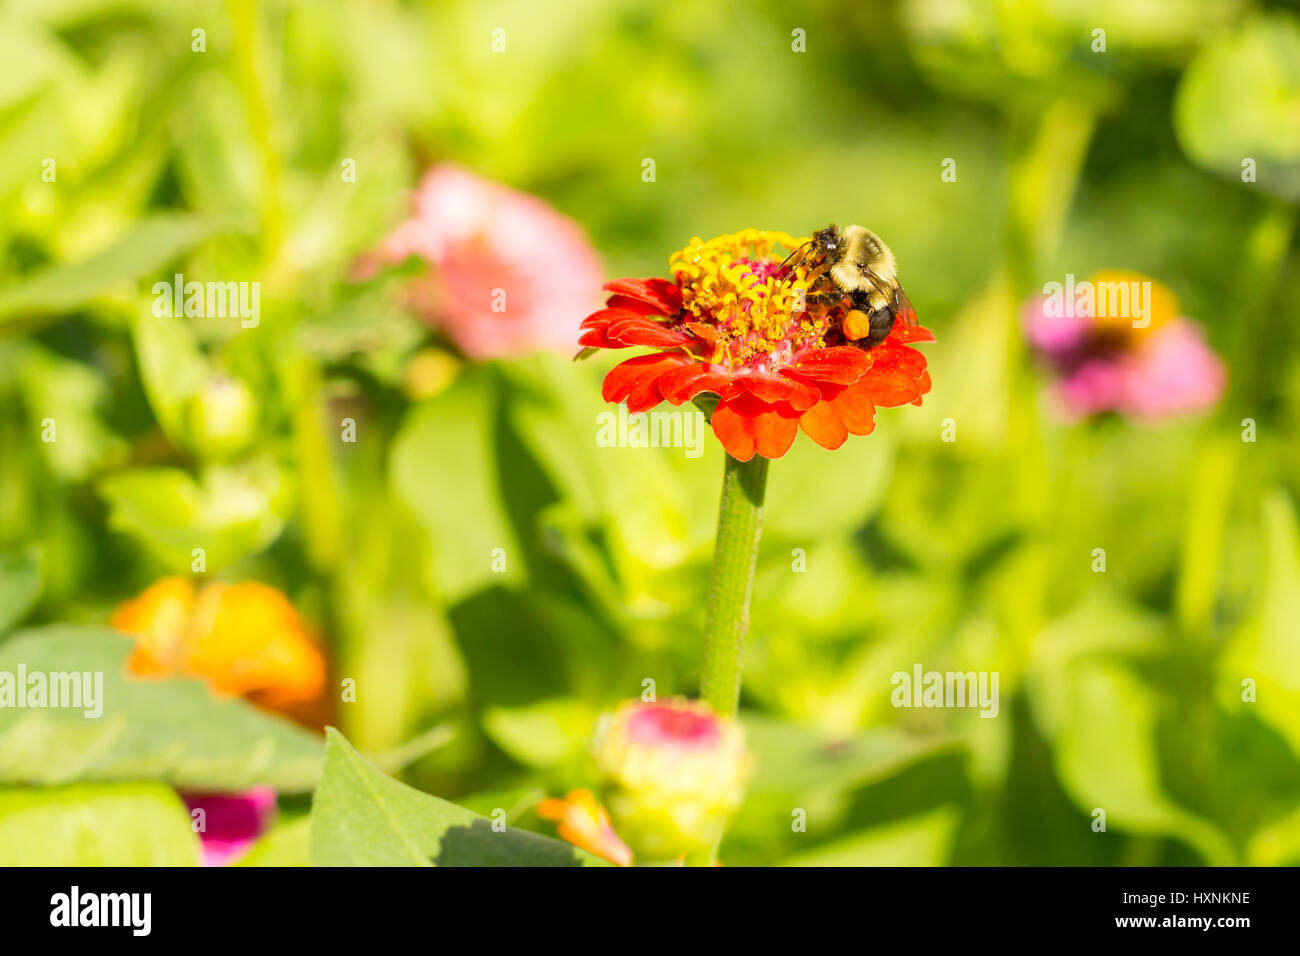 Honey Bee On Red Orange Yellow Flower With Pollen Sacs On Side